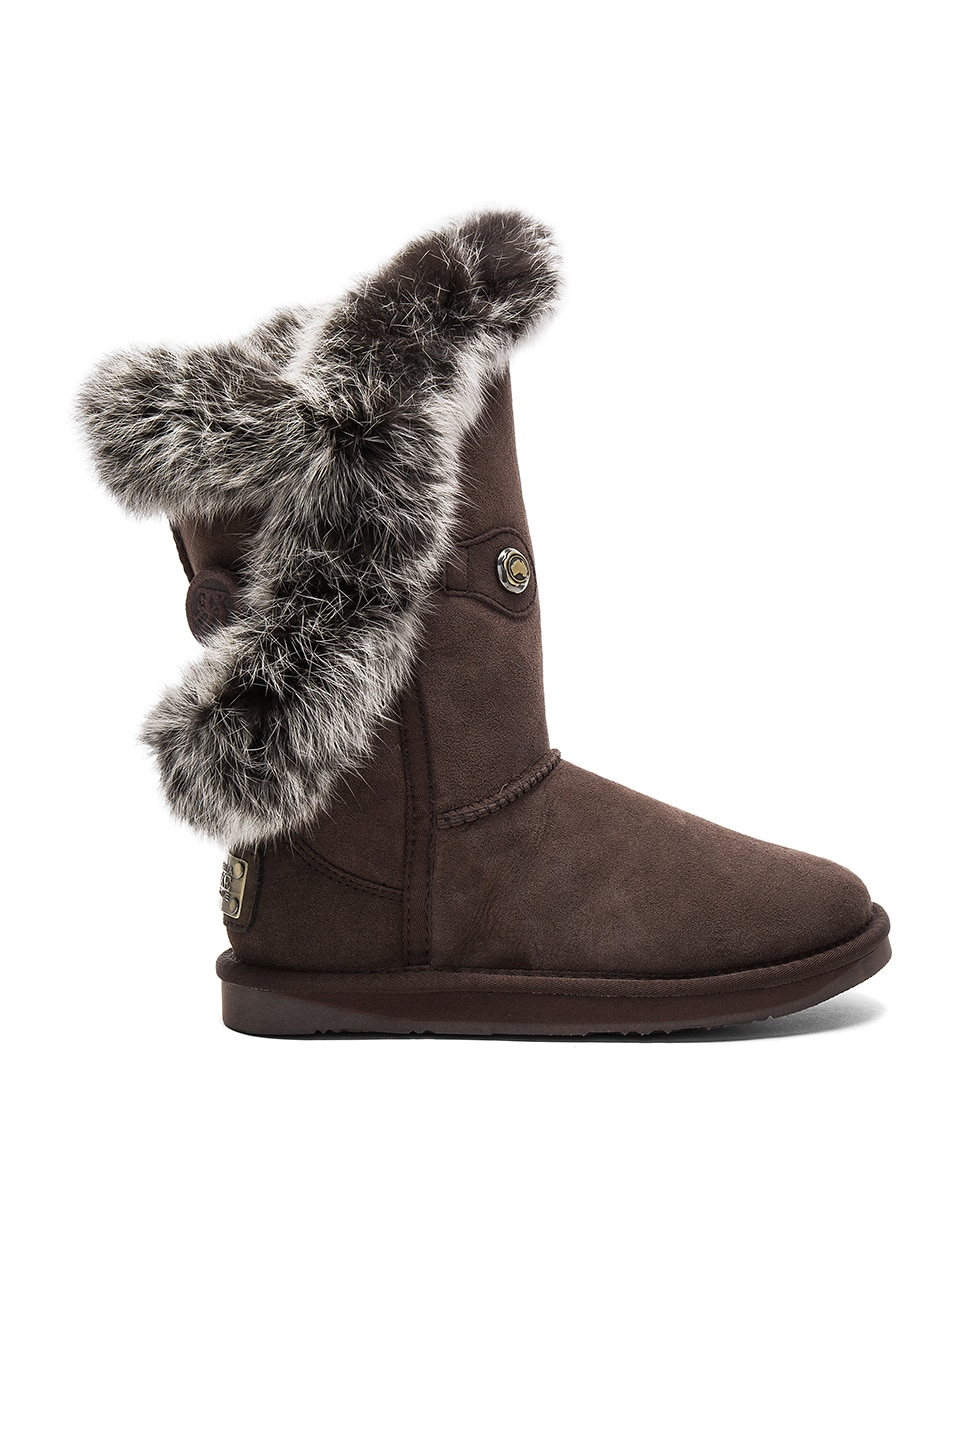 Photo of Nordic Angel Short Rabbit Fur and Shearling Boot by Australia Luxe Collective shoes